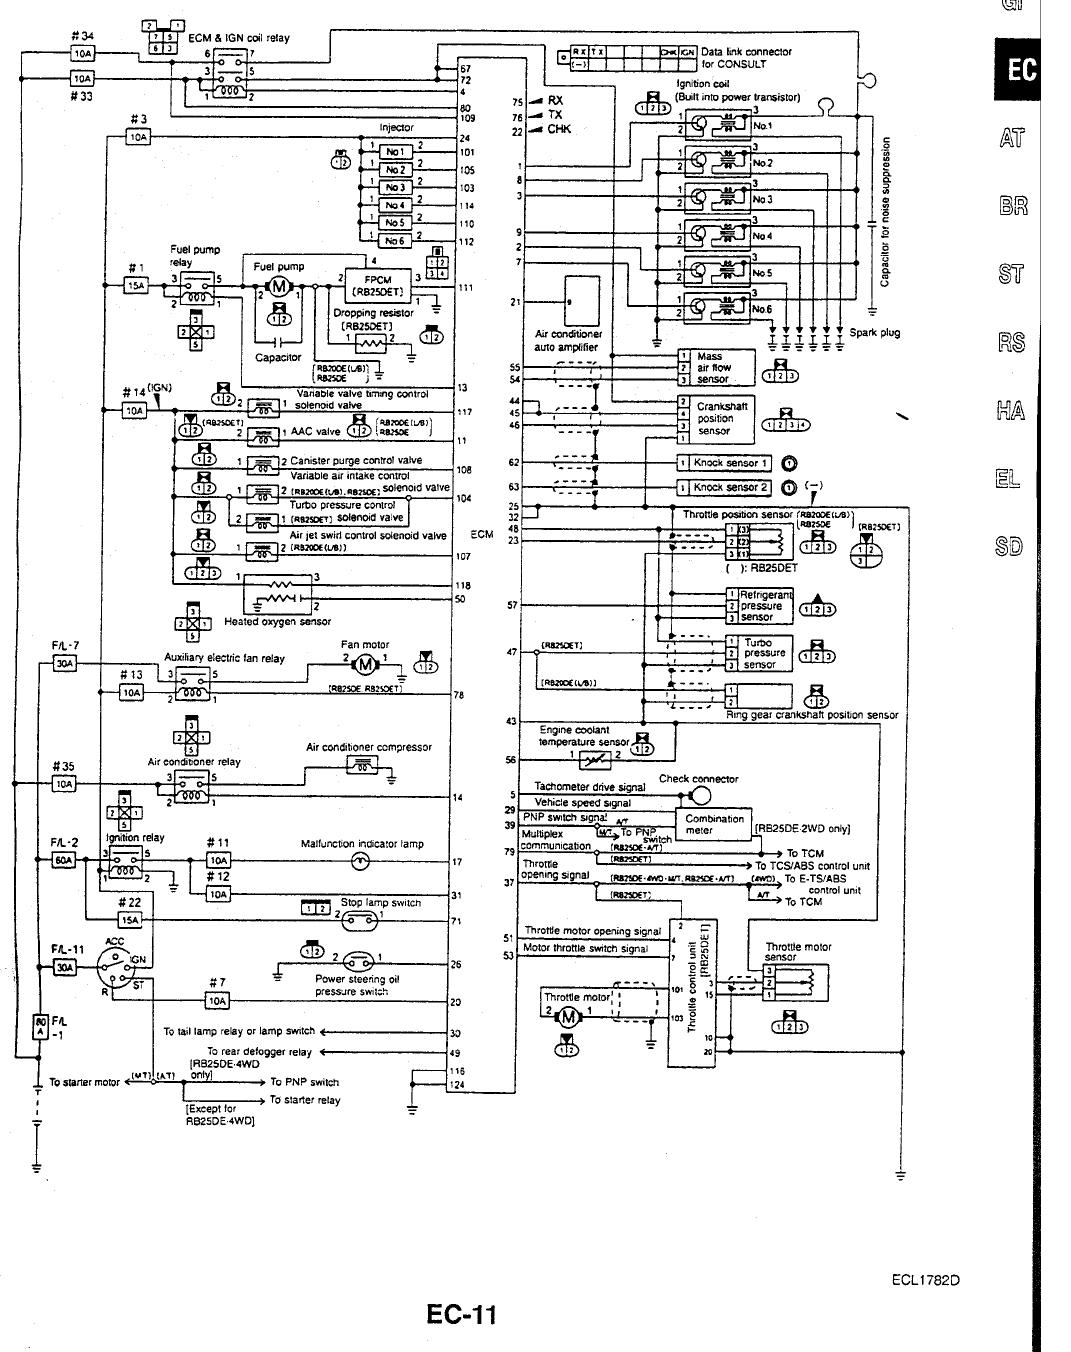 r33 radio wiring diagram 1986 kawasaki bayou 300 coil pack query forced induction performance